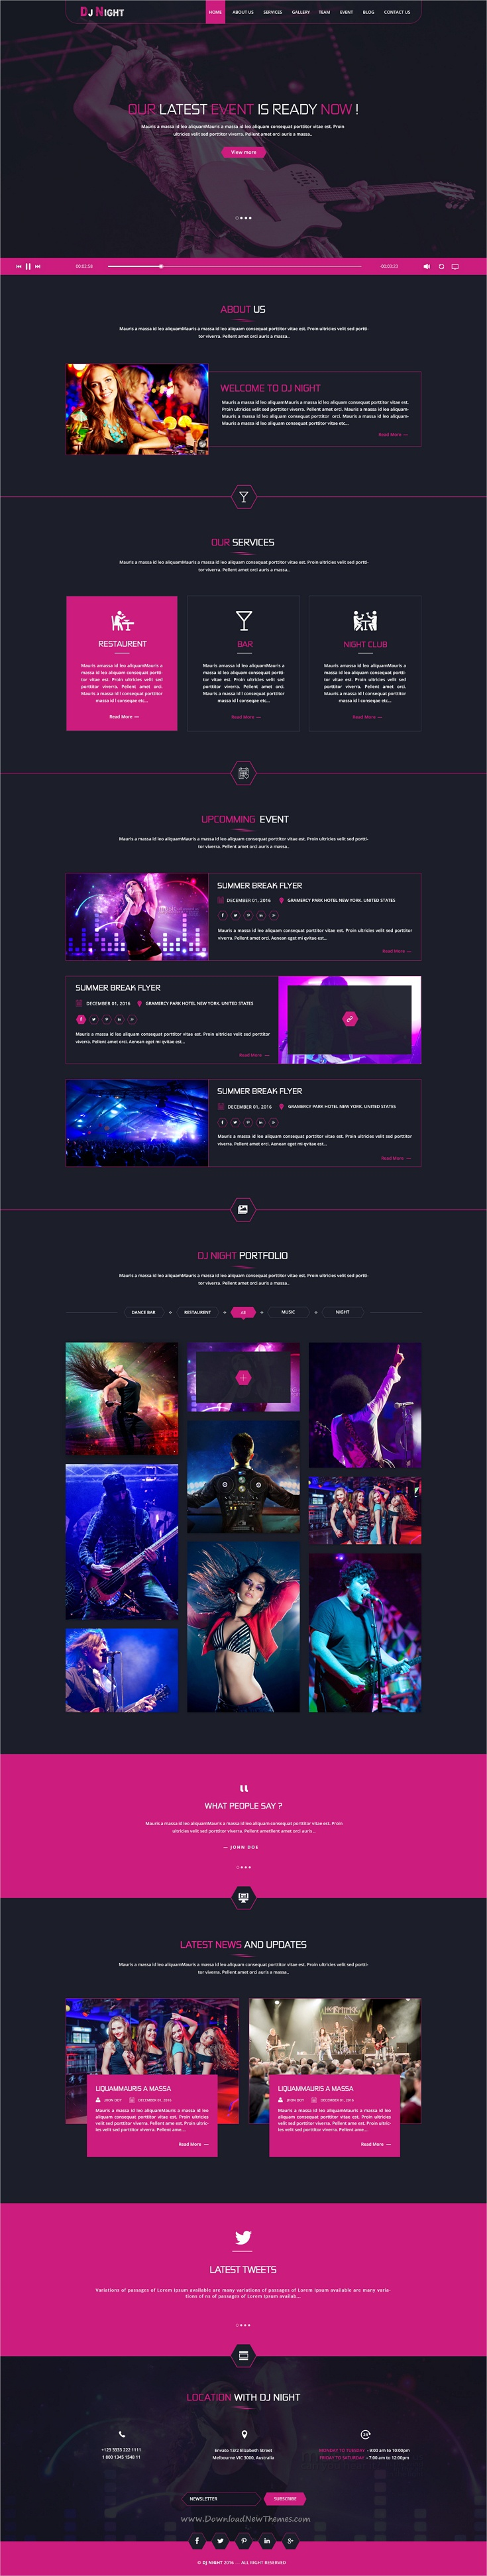 DJ Night - Event, DJ, Party, Music Club HTML Template | Dj party and ...